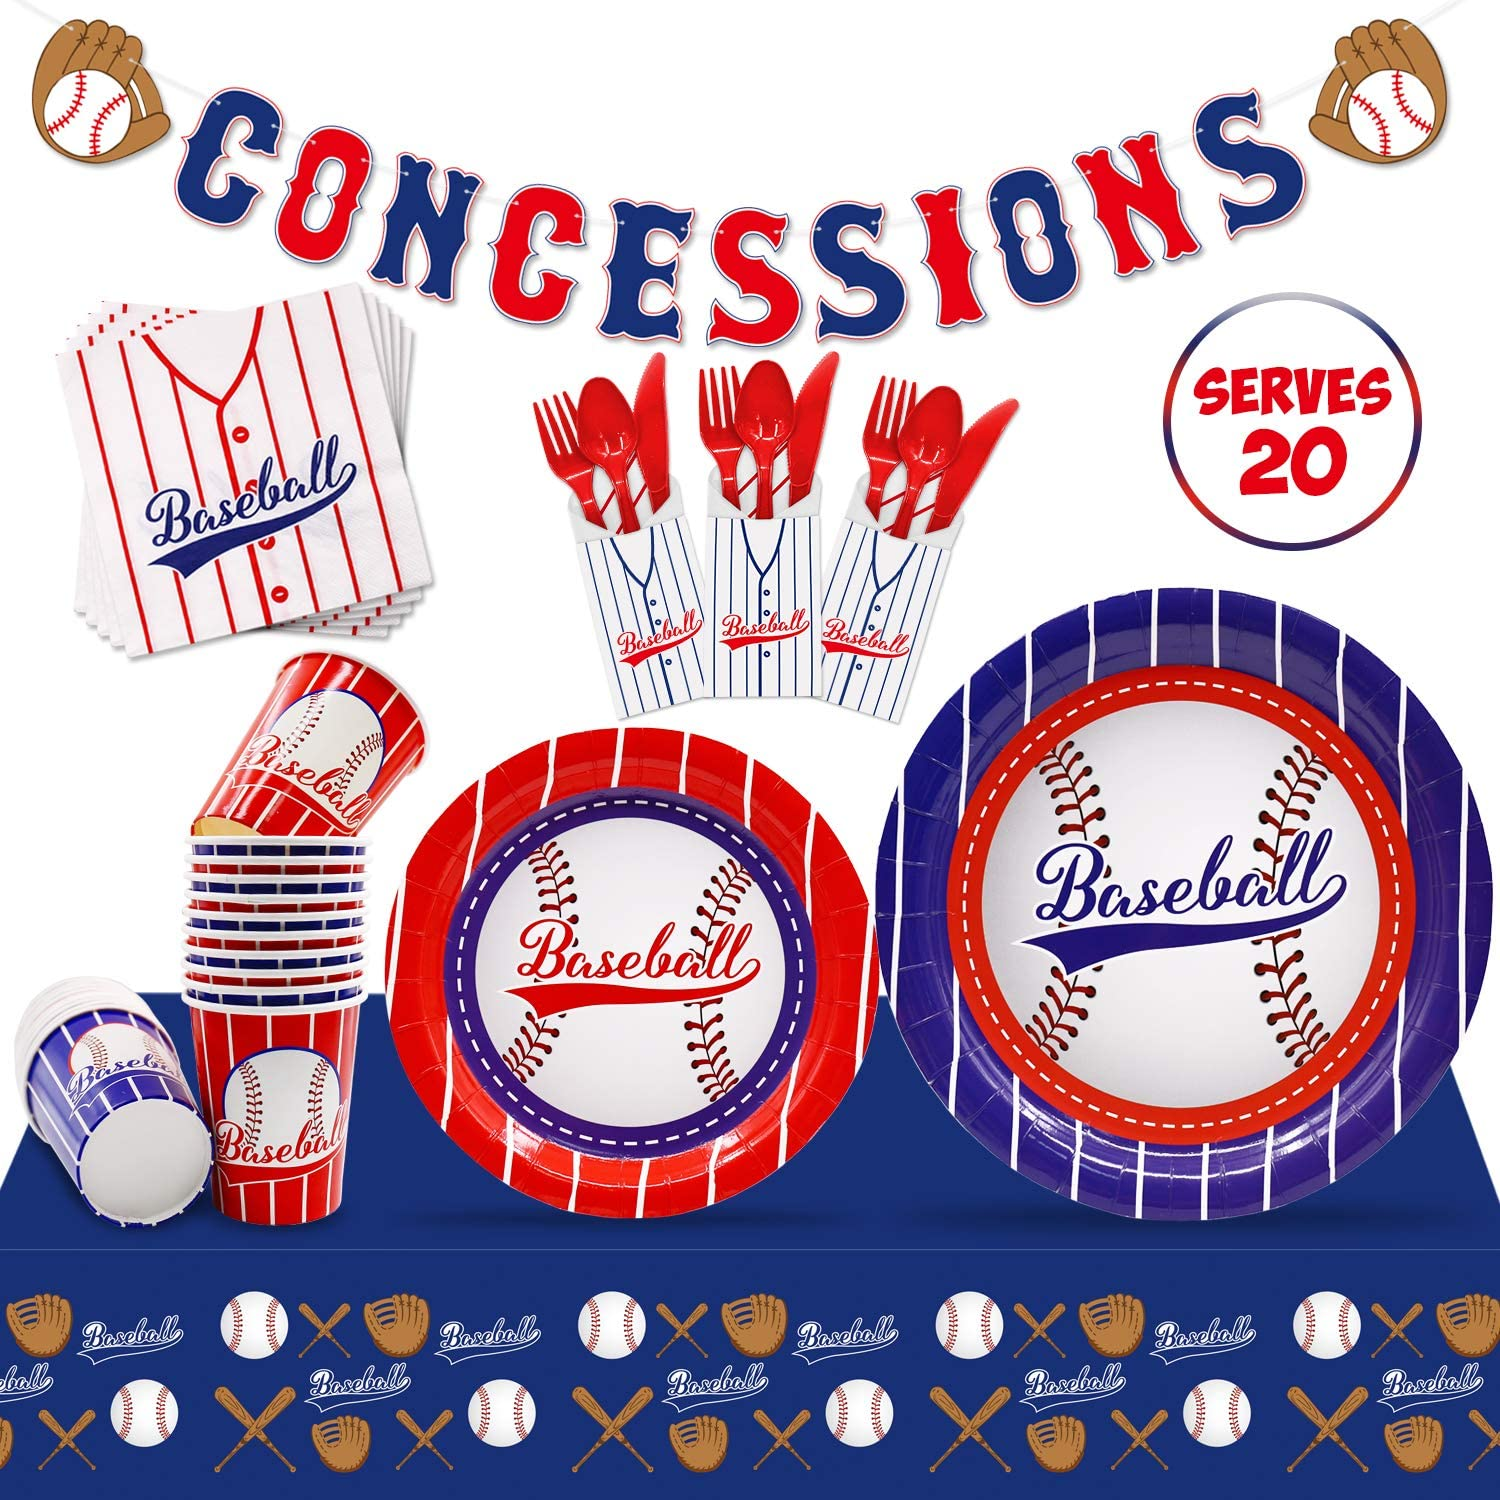 Baseball Party Supplies Set Serves 20 Guests Baseball Party Tableware Kit Concessions Banner Tablecloth Plates Cups Napkins for Sports Theme Birthday Party Decorations MLB Party Supplies